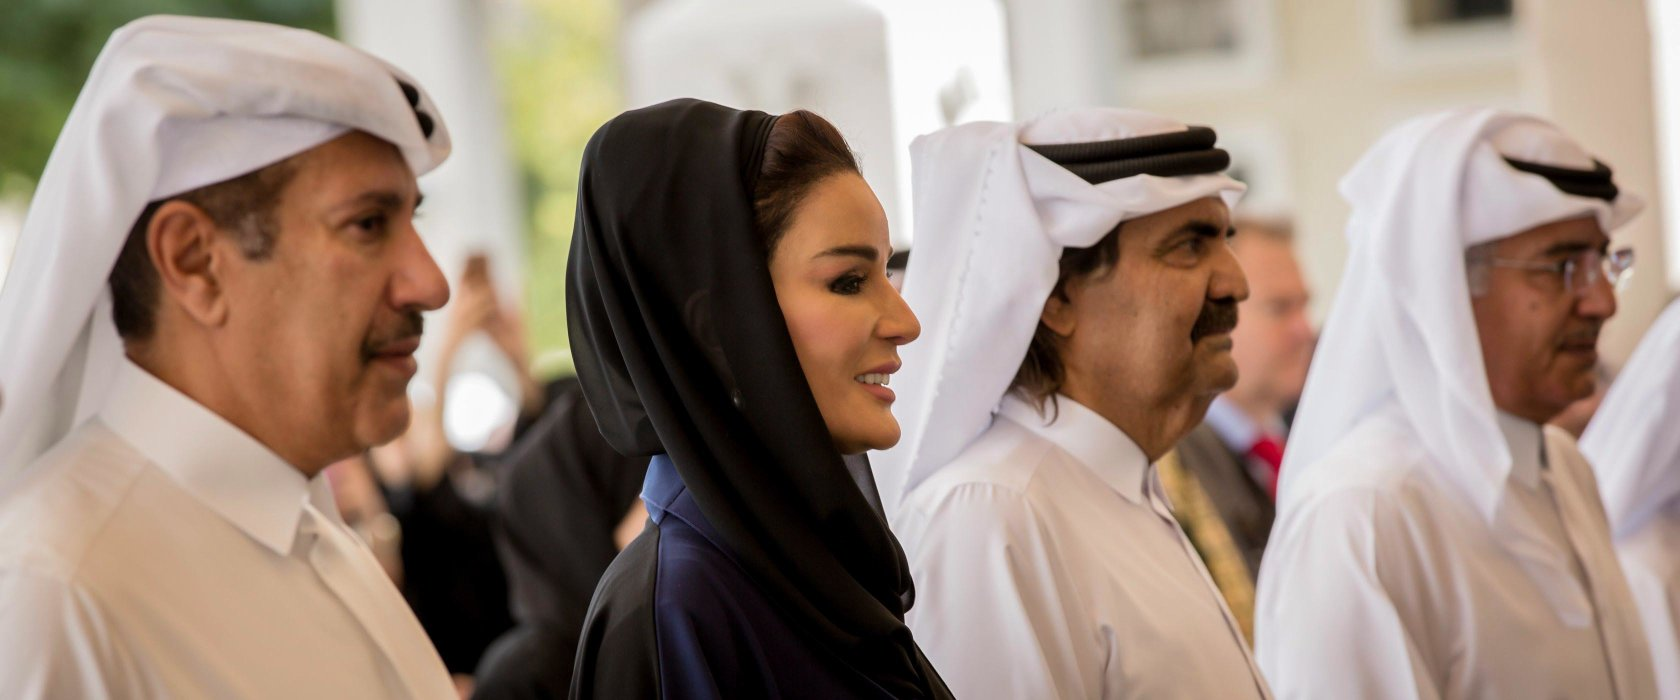 His Highness the Father Amir and Her Highness Sheikha Moza bint Nasser attend official opening of QF's Tariq Bin Ziad School